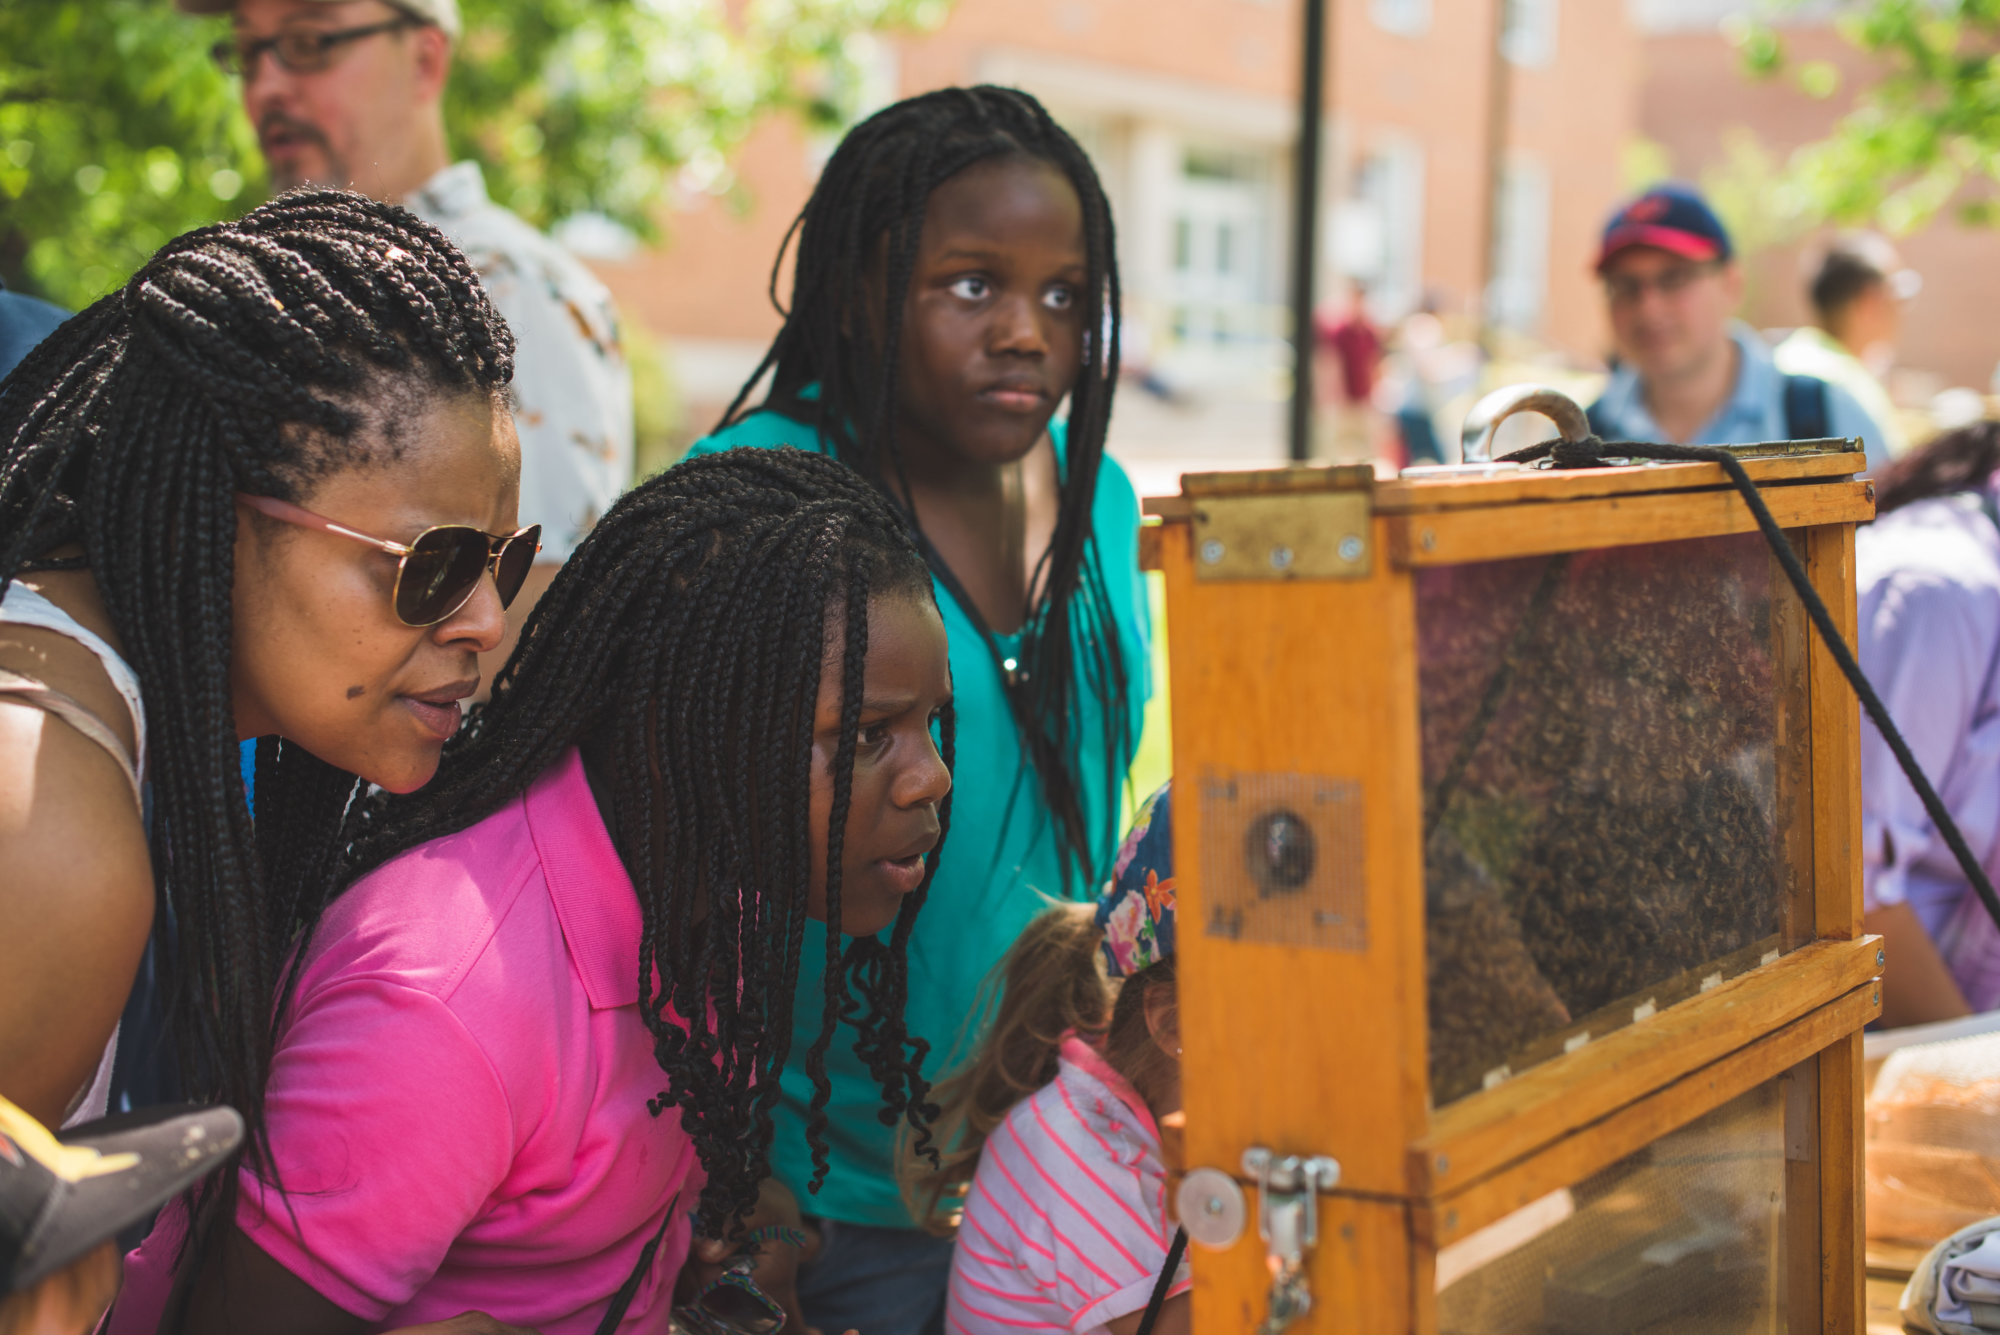 In the courtyard of the Animal Sciences Building you can learn about bee keeping and get up close and personal with some honey hives. (Courtesy University of Maryland)